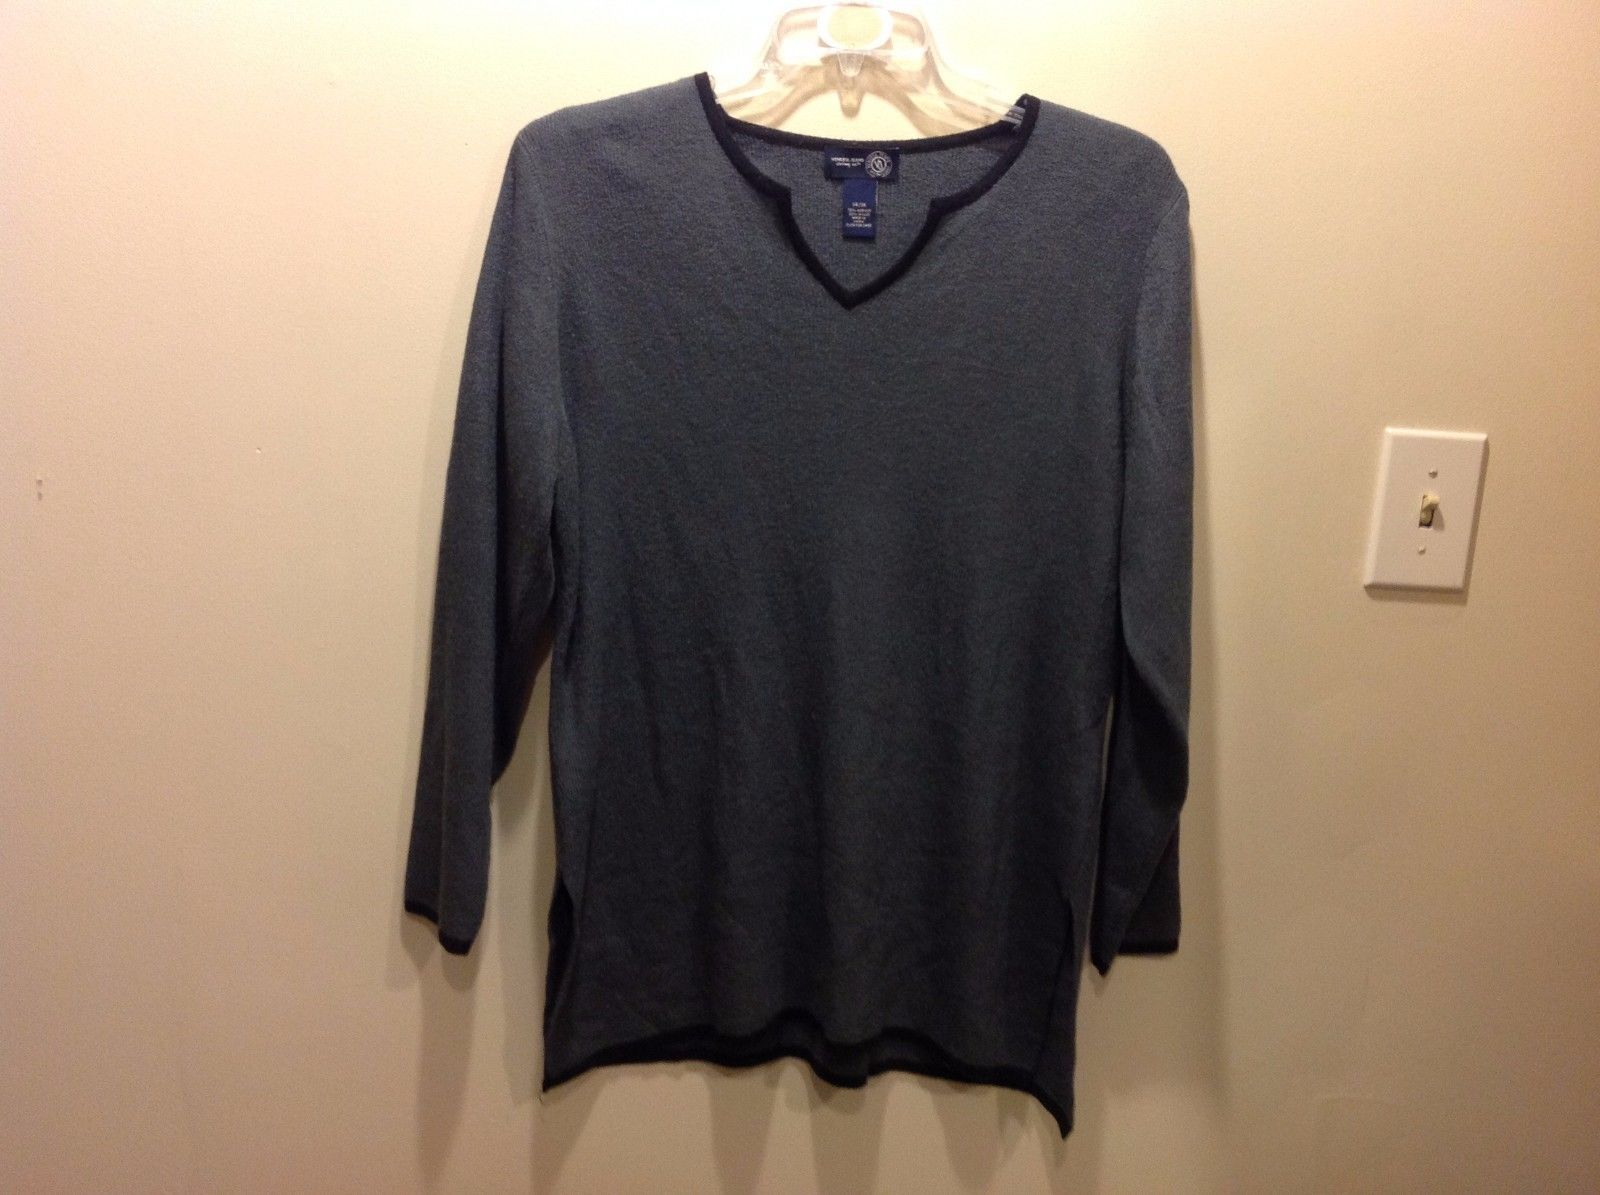 Dark Gray Long Sleeve Shirt Sweater by Venezia Jeans Sz 14 16